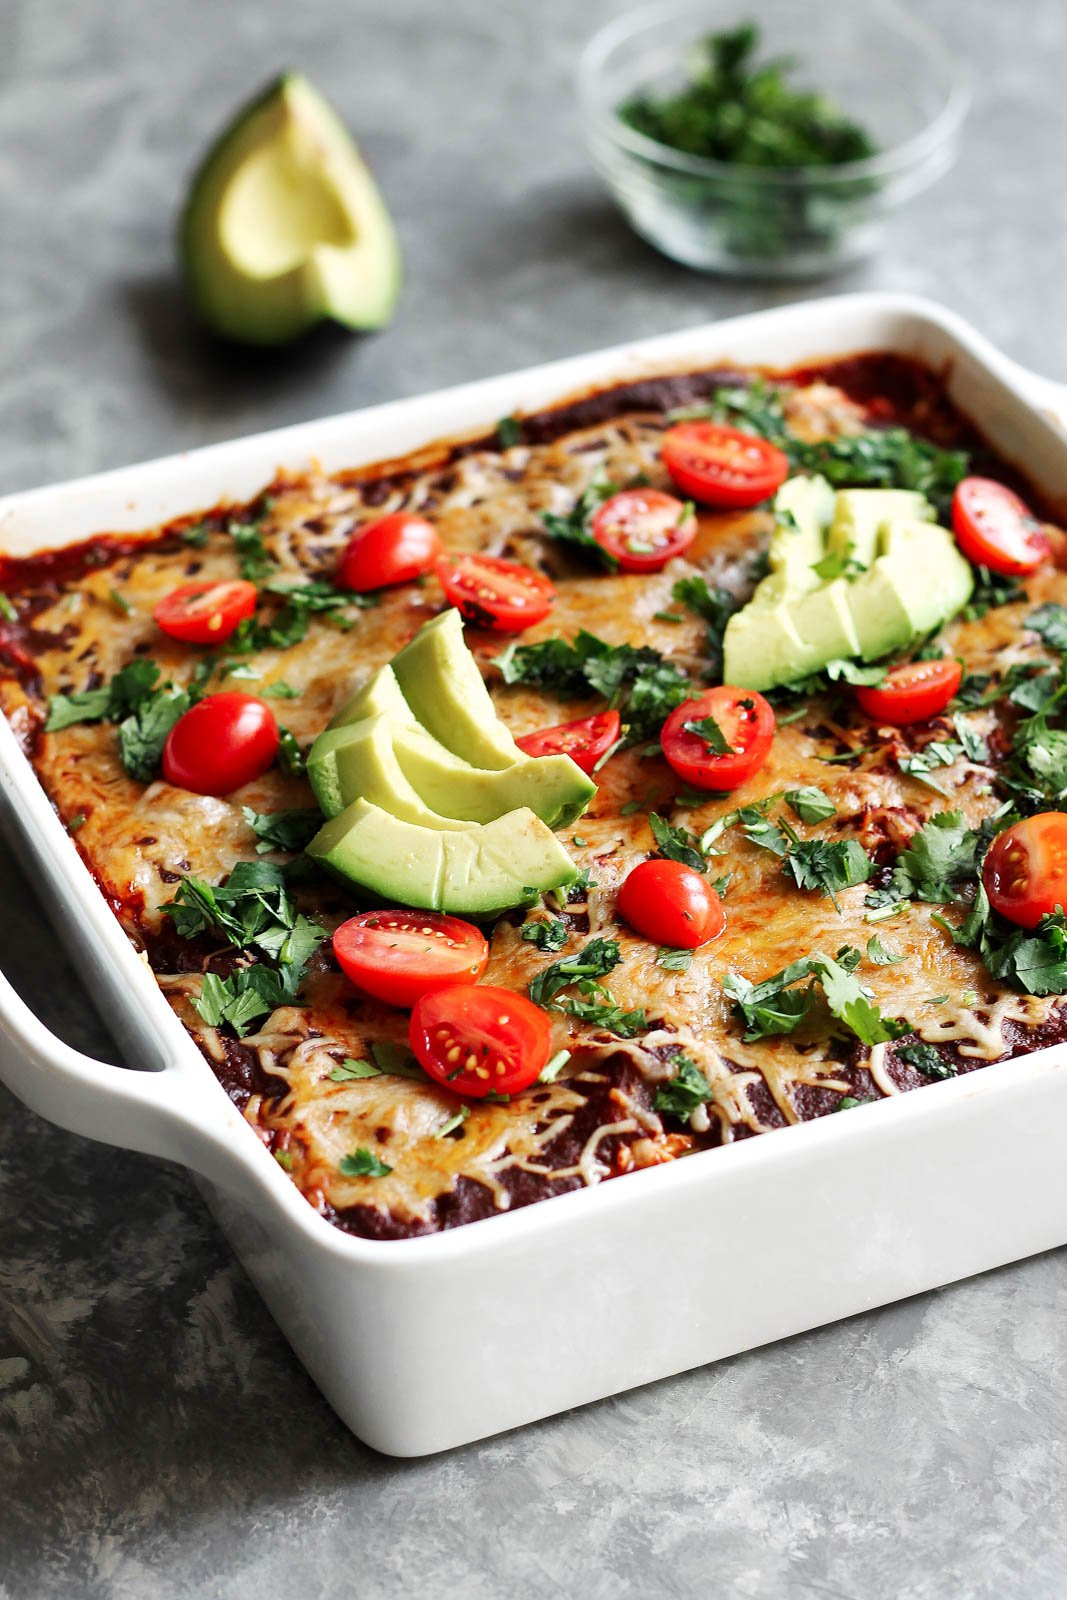 Enchilada casserole in a white baking dish with avocado and tomatoes